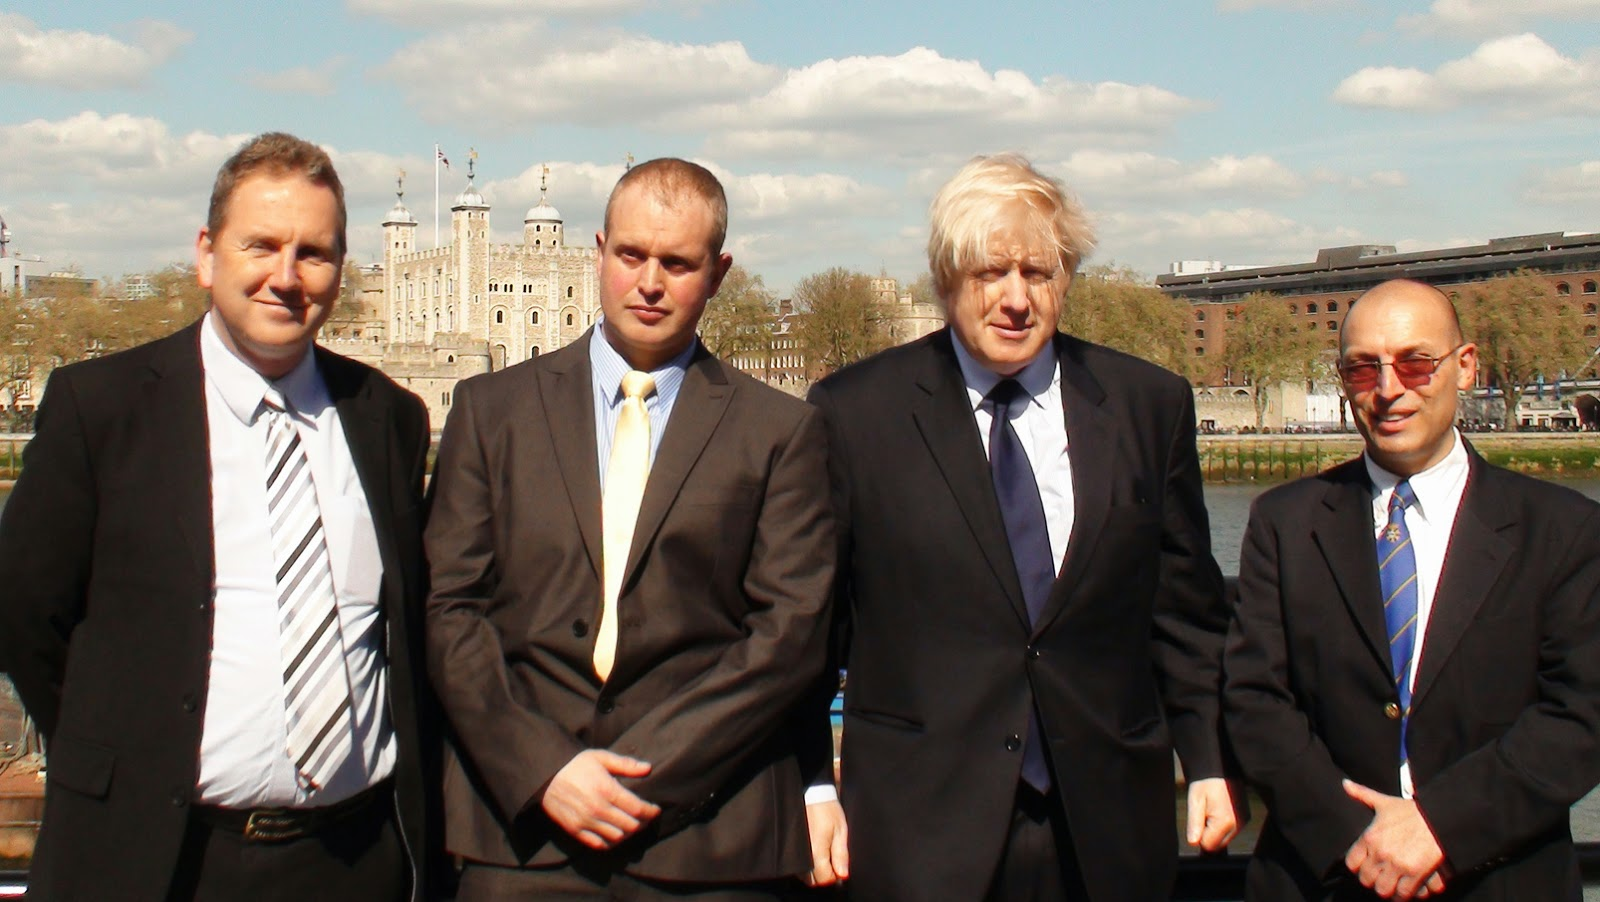 Simon Densley, Stewart Mackay, Boris Johnson and Gino Marotta